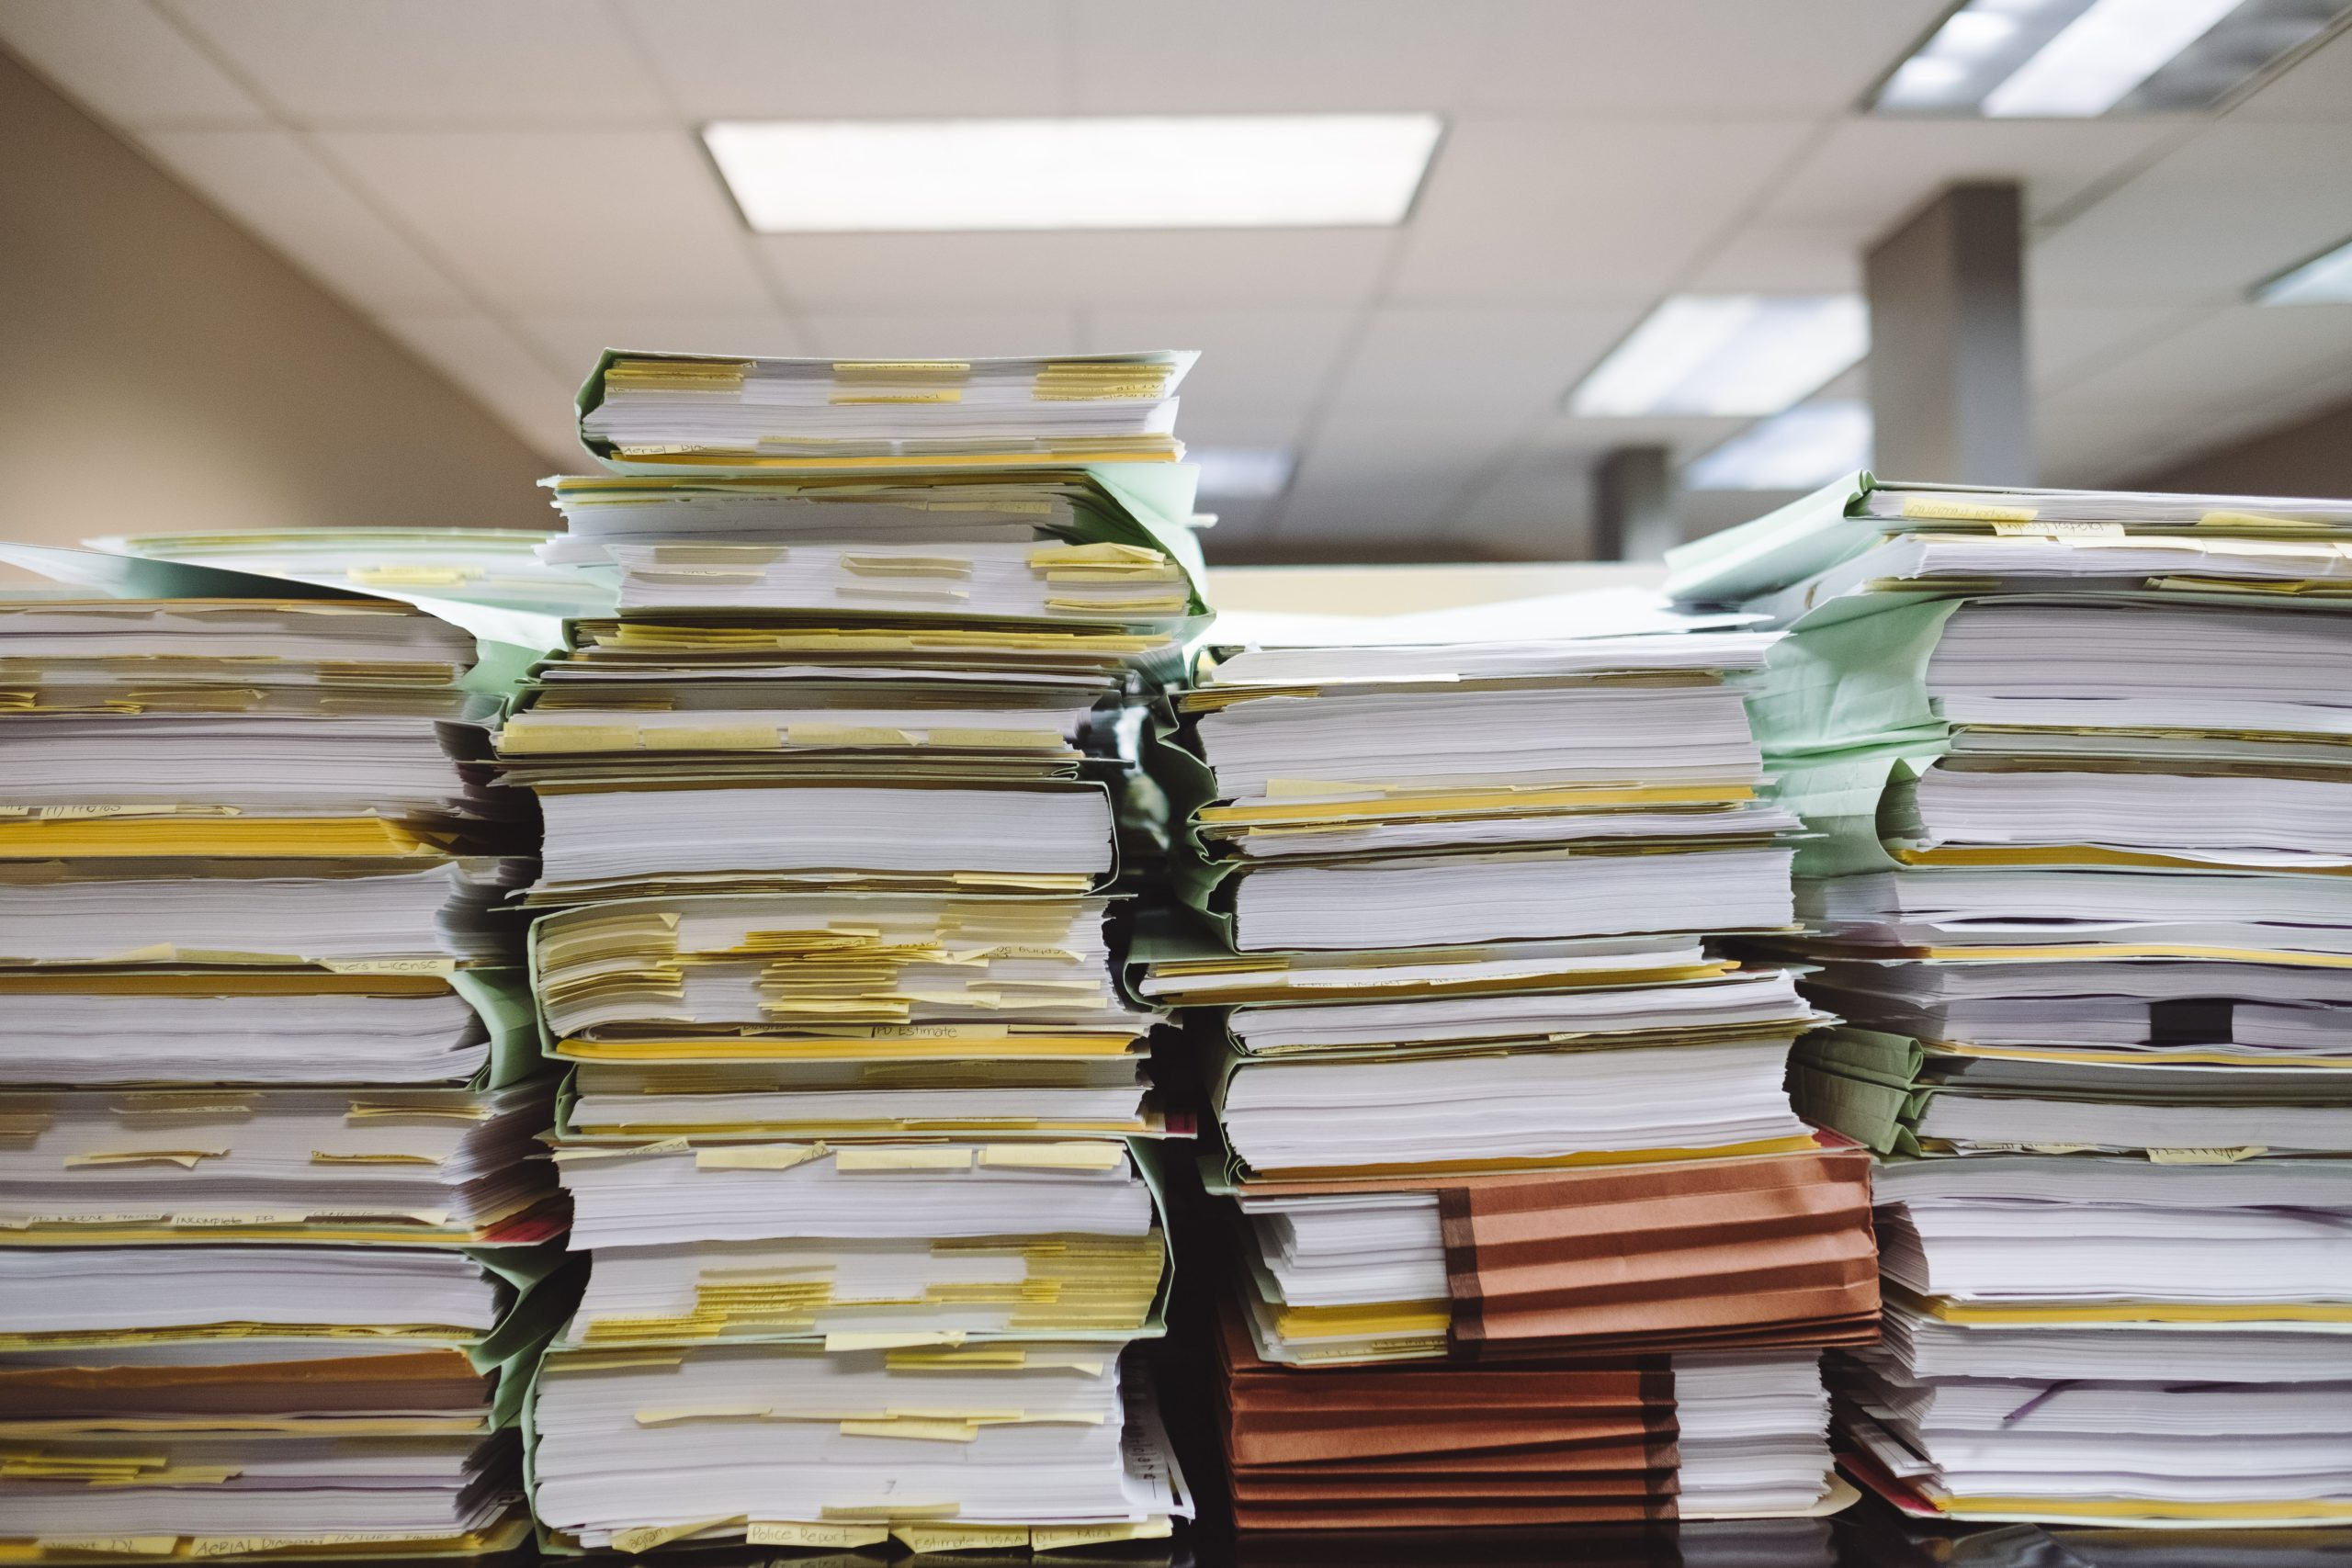 ISO 9001 paperwork quality management system